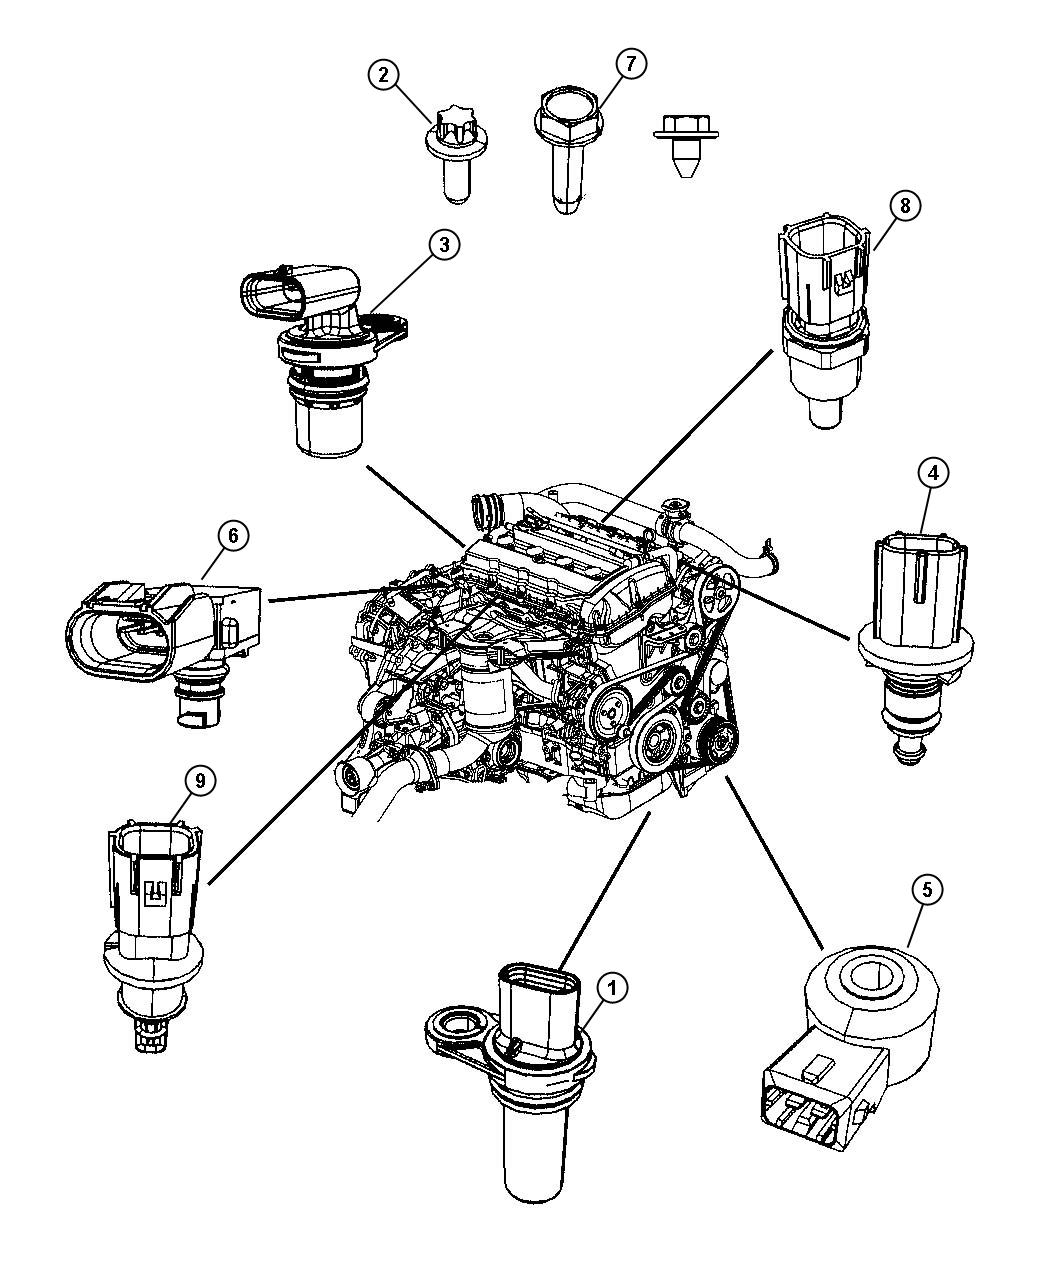 Diagram Sensors, Gas Engine. for your Dodge